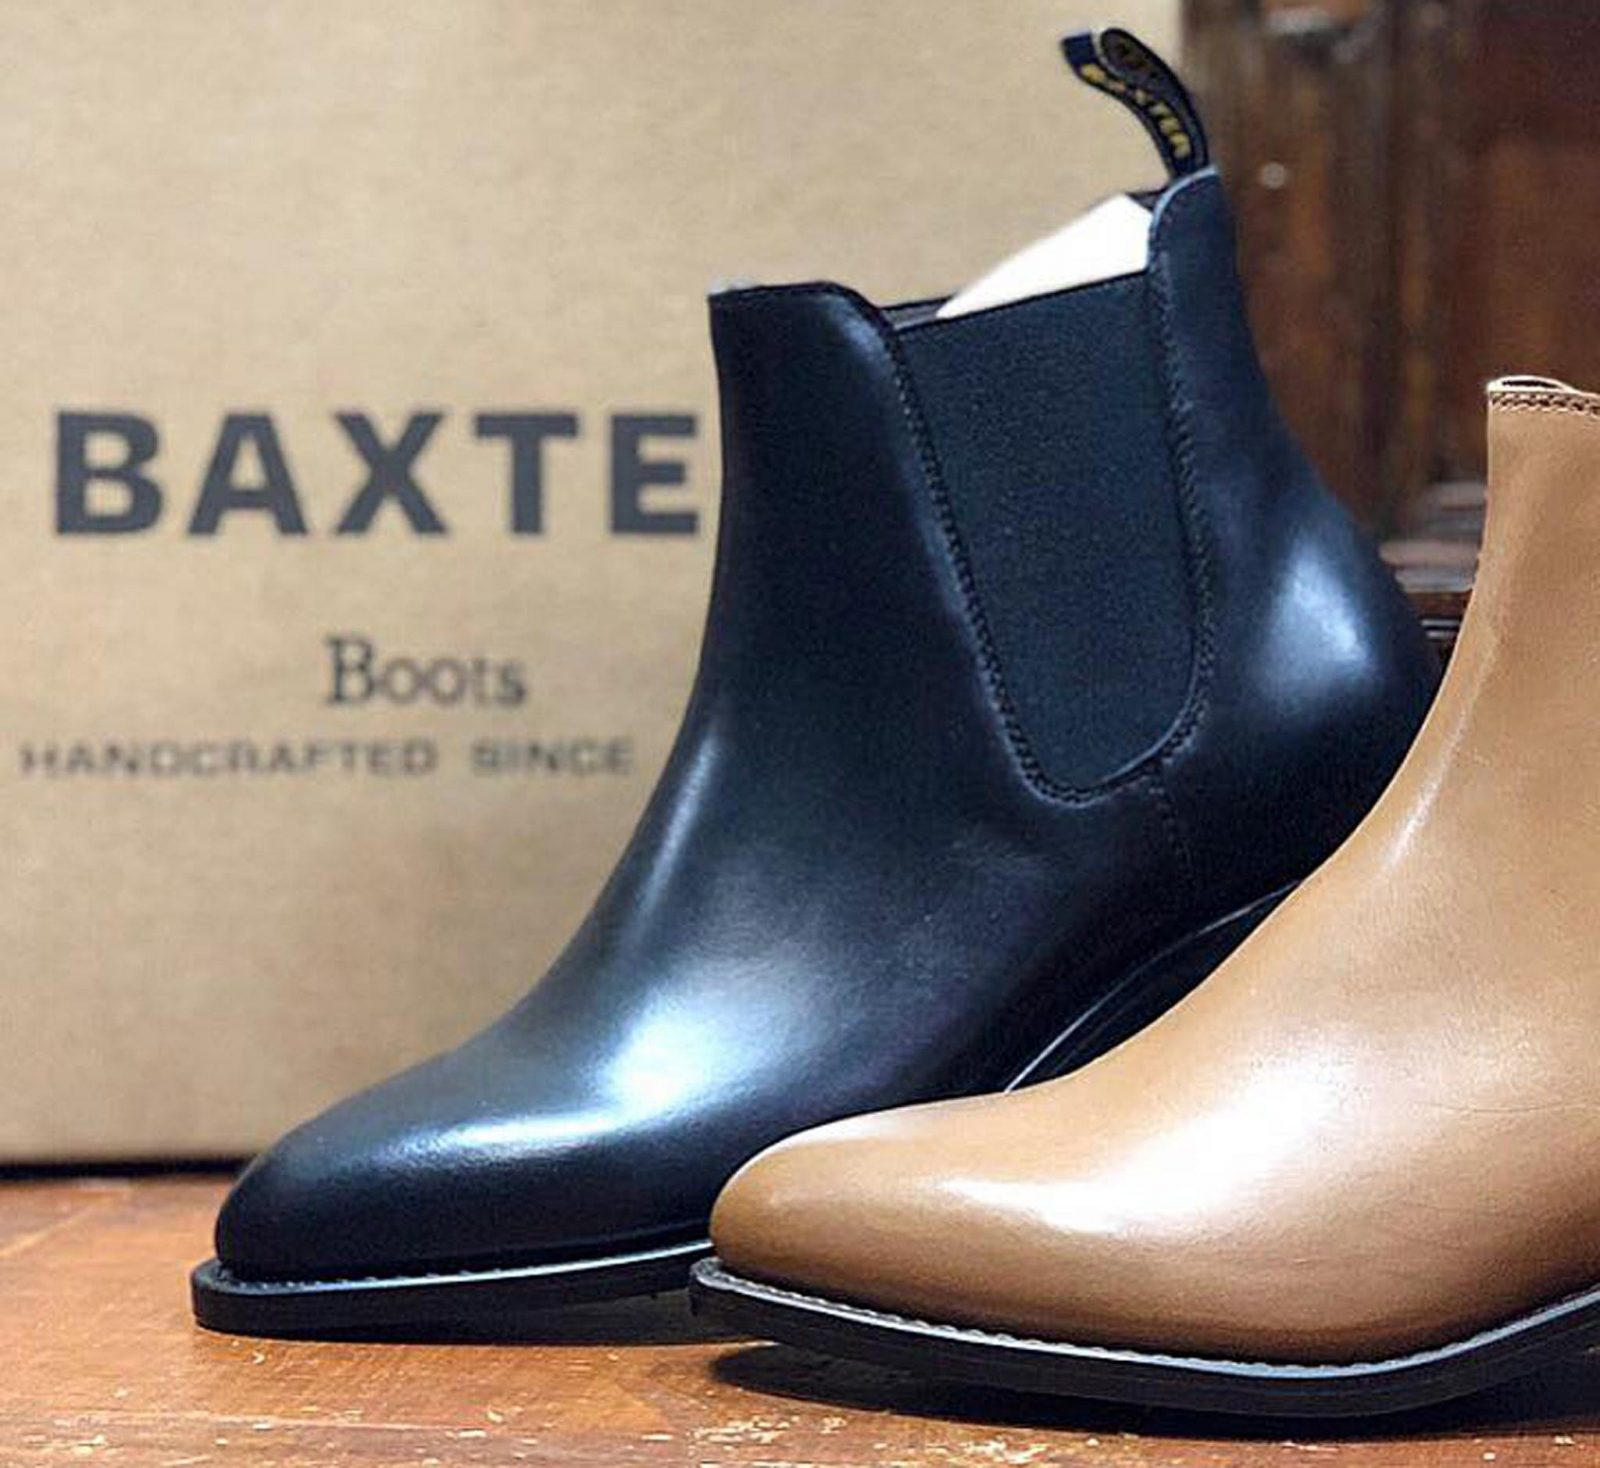 1 tan and 1 black boot in front of a Baxter box